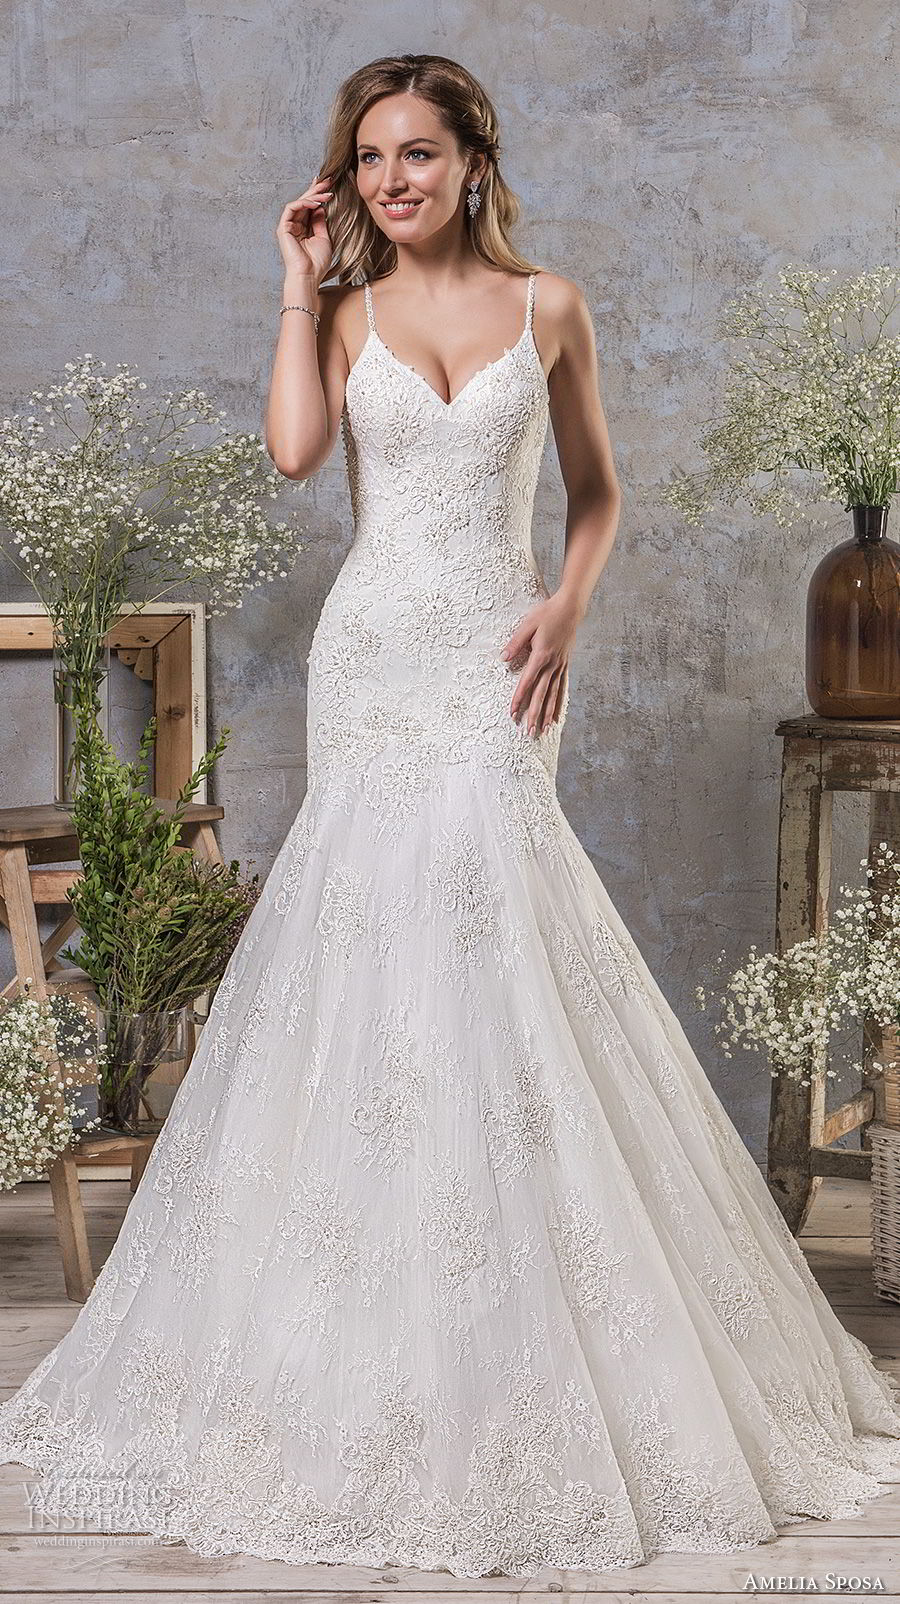 amelia sposa fall 2018 bridal spaghetti strap sweetheart neckline heavily embellished bodice drop waist a line wedding dress open strap back chapel train (7) mv